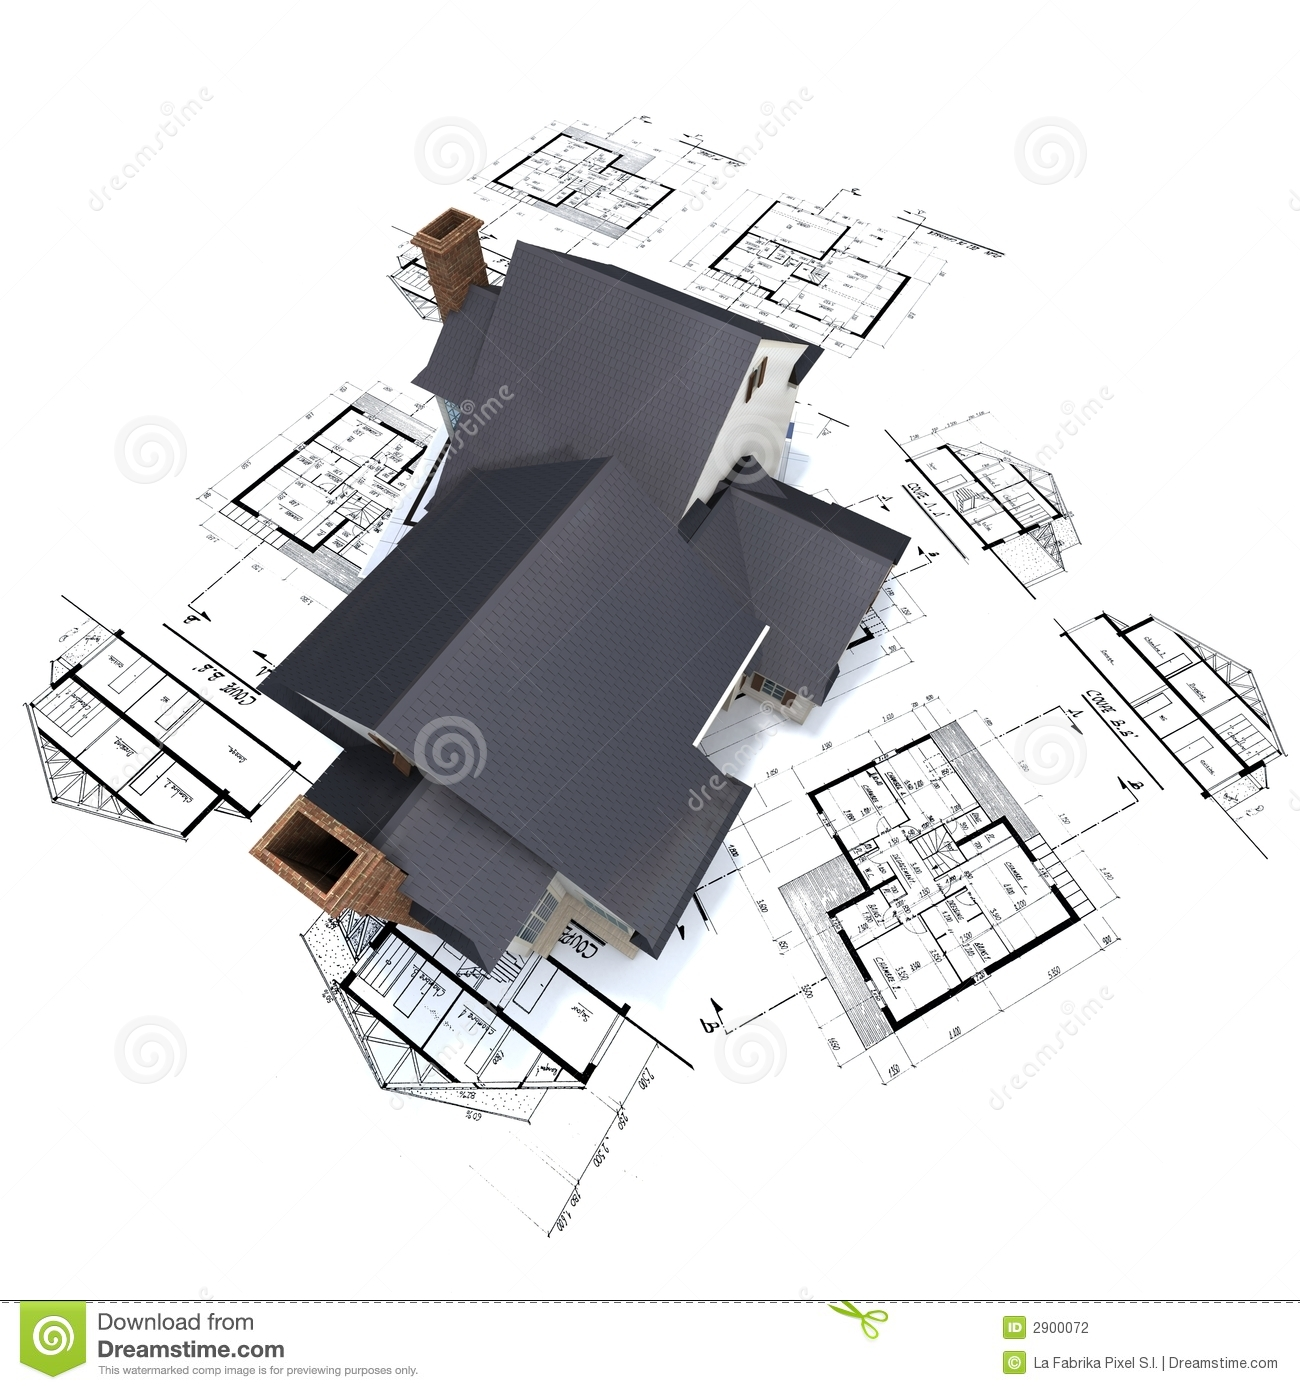 Residential house on plans 3 stock illustration image for Stock home plans